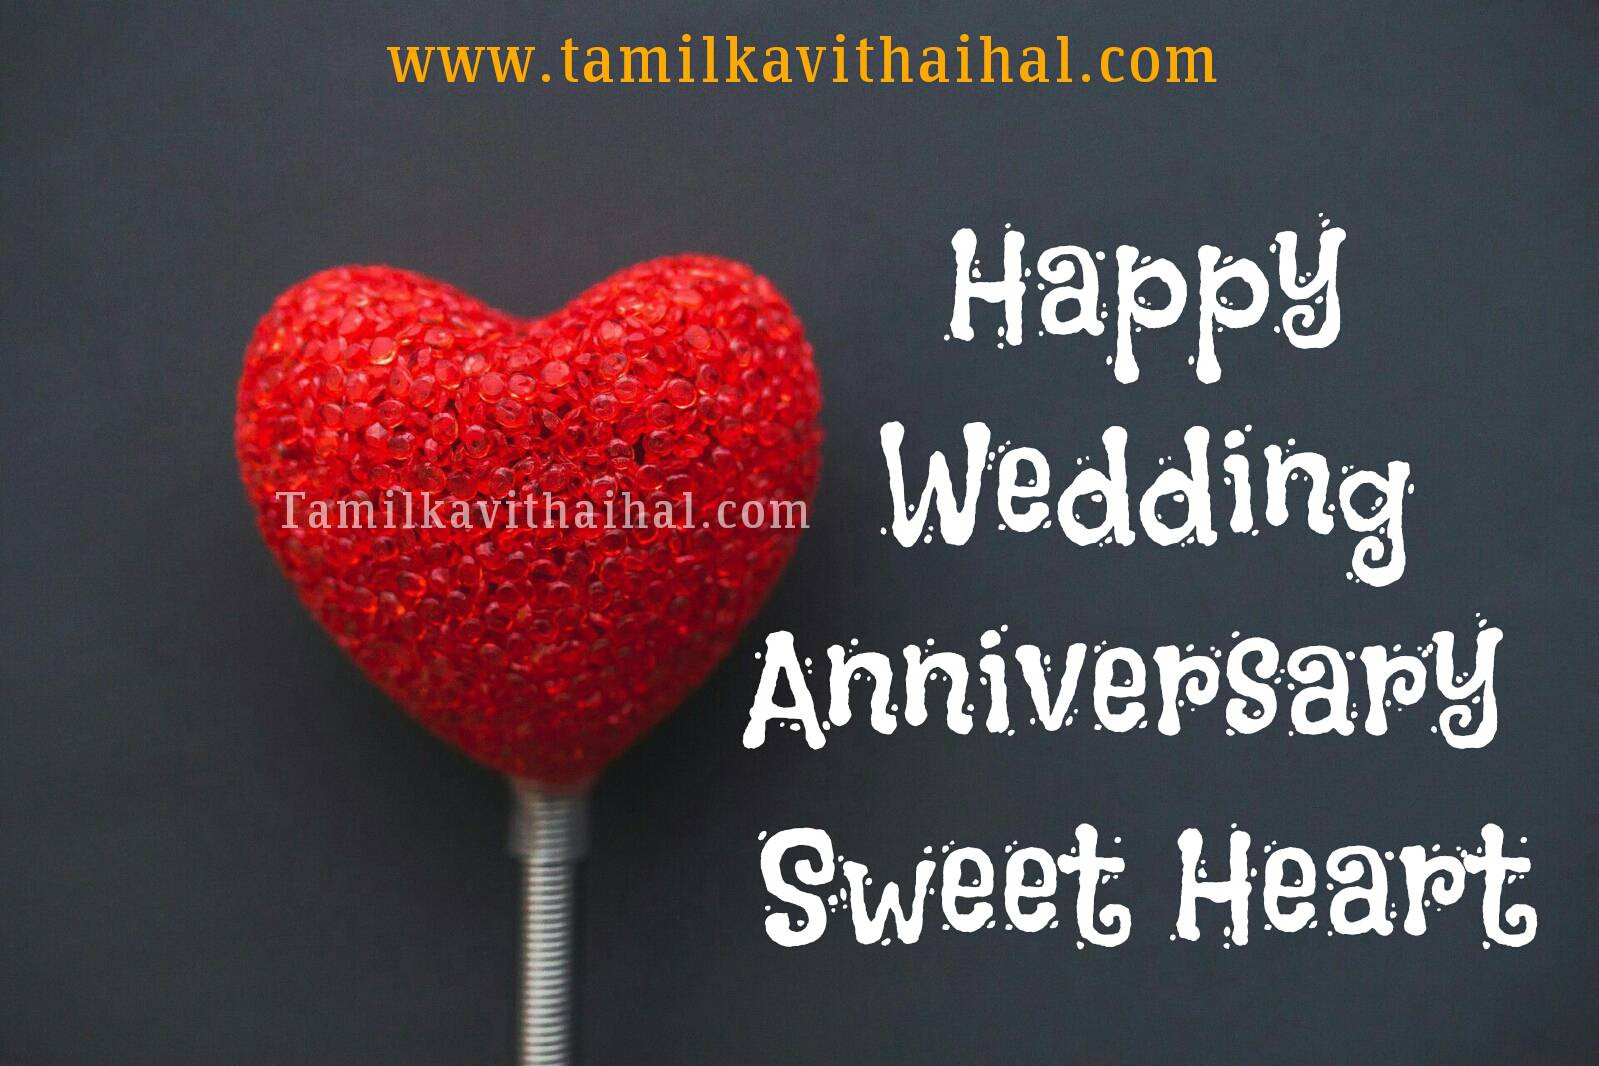 Beautiful Couple Lovely Marriage Wishes In Tamil Kavithaigal Heart 1599x1066 Download Hd Wallpaper Wallpapertip